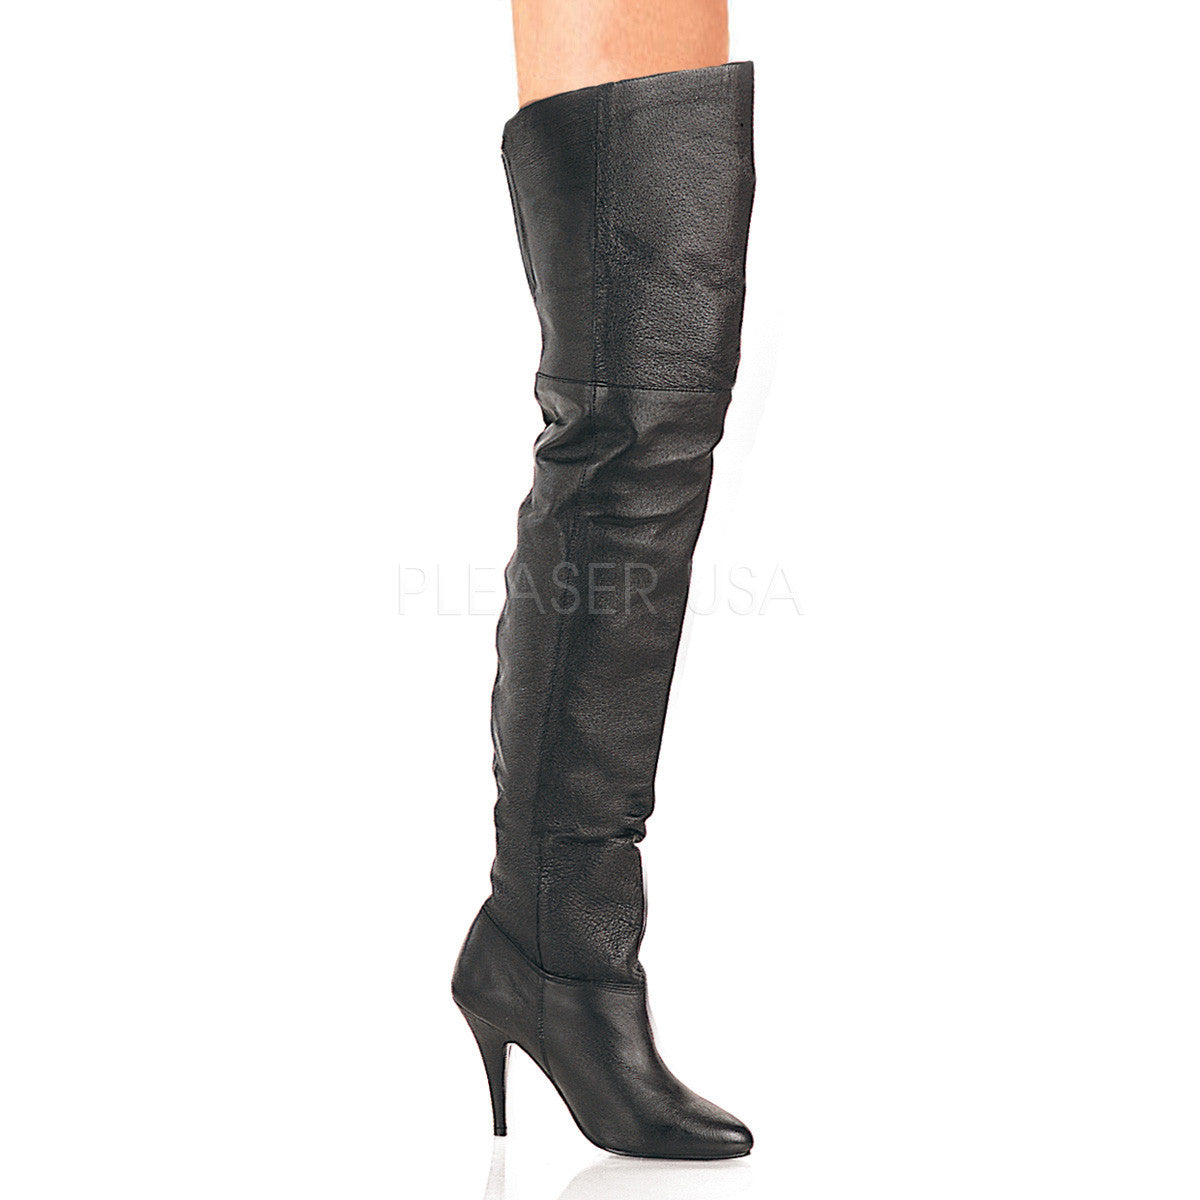 PLEASER LEGEND-8868 Black Leather Thigh High Boots - Shoecup.com